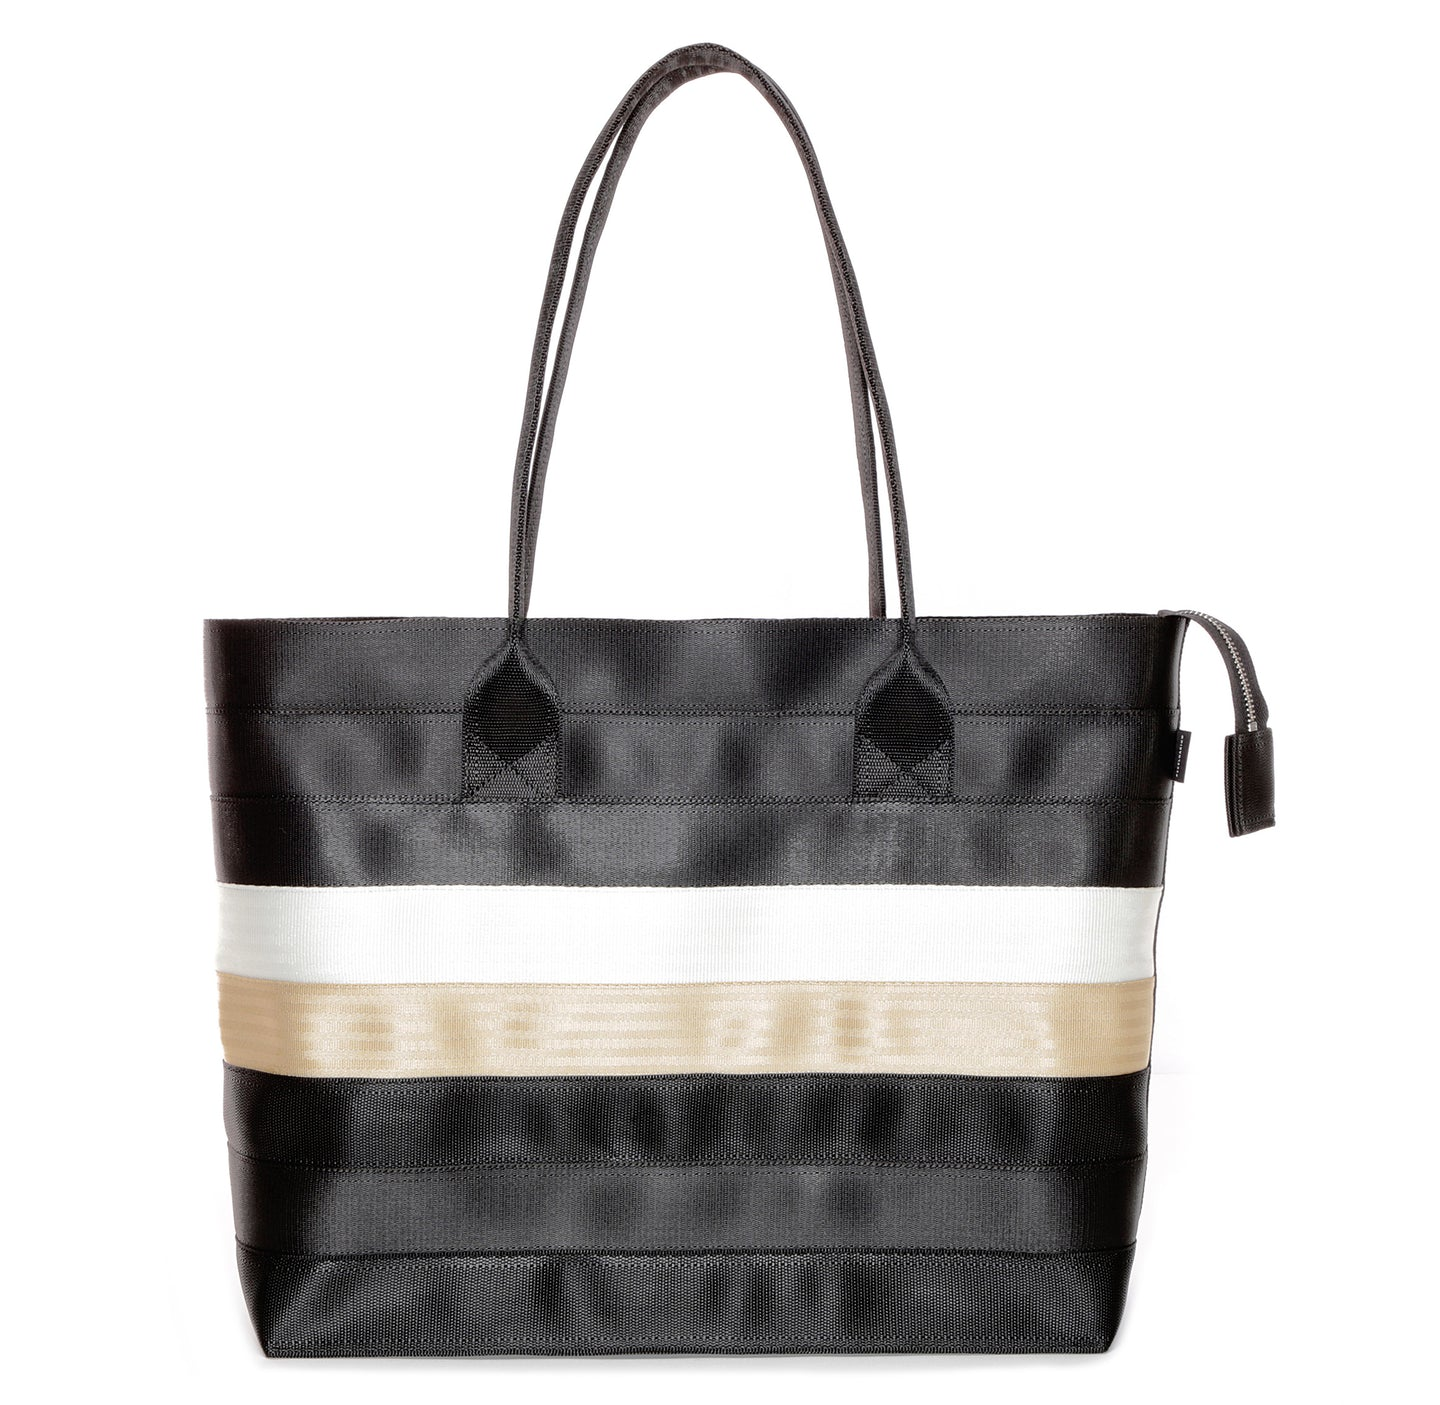 Shopper Tote Black White Gold front